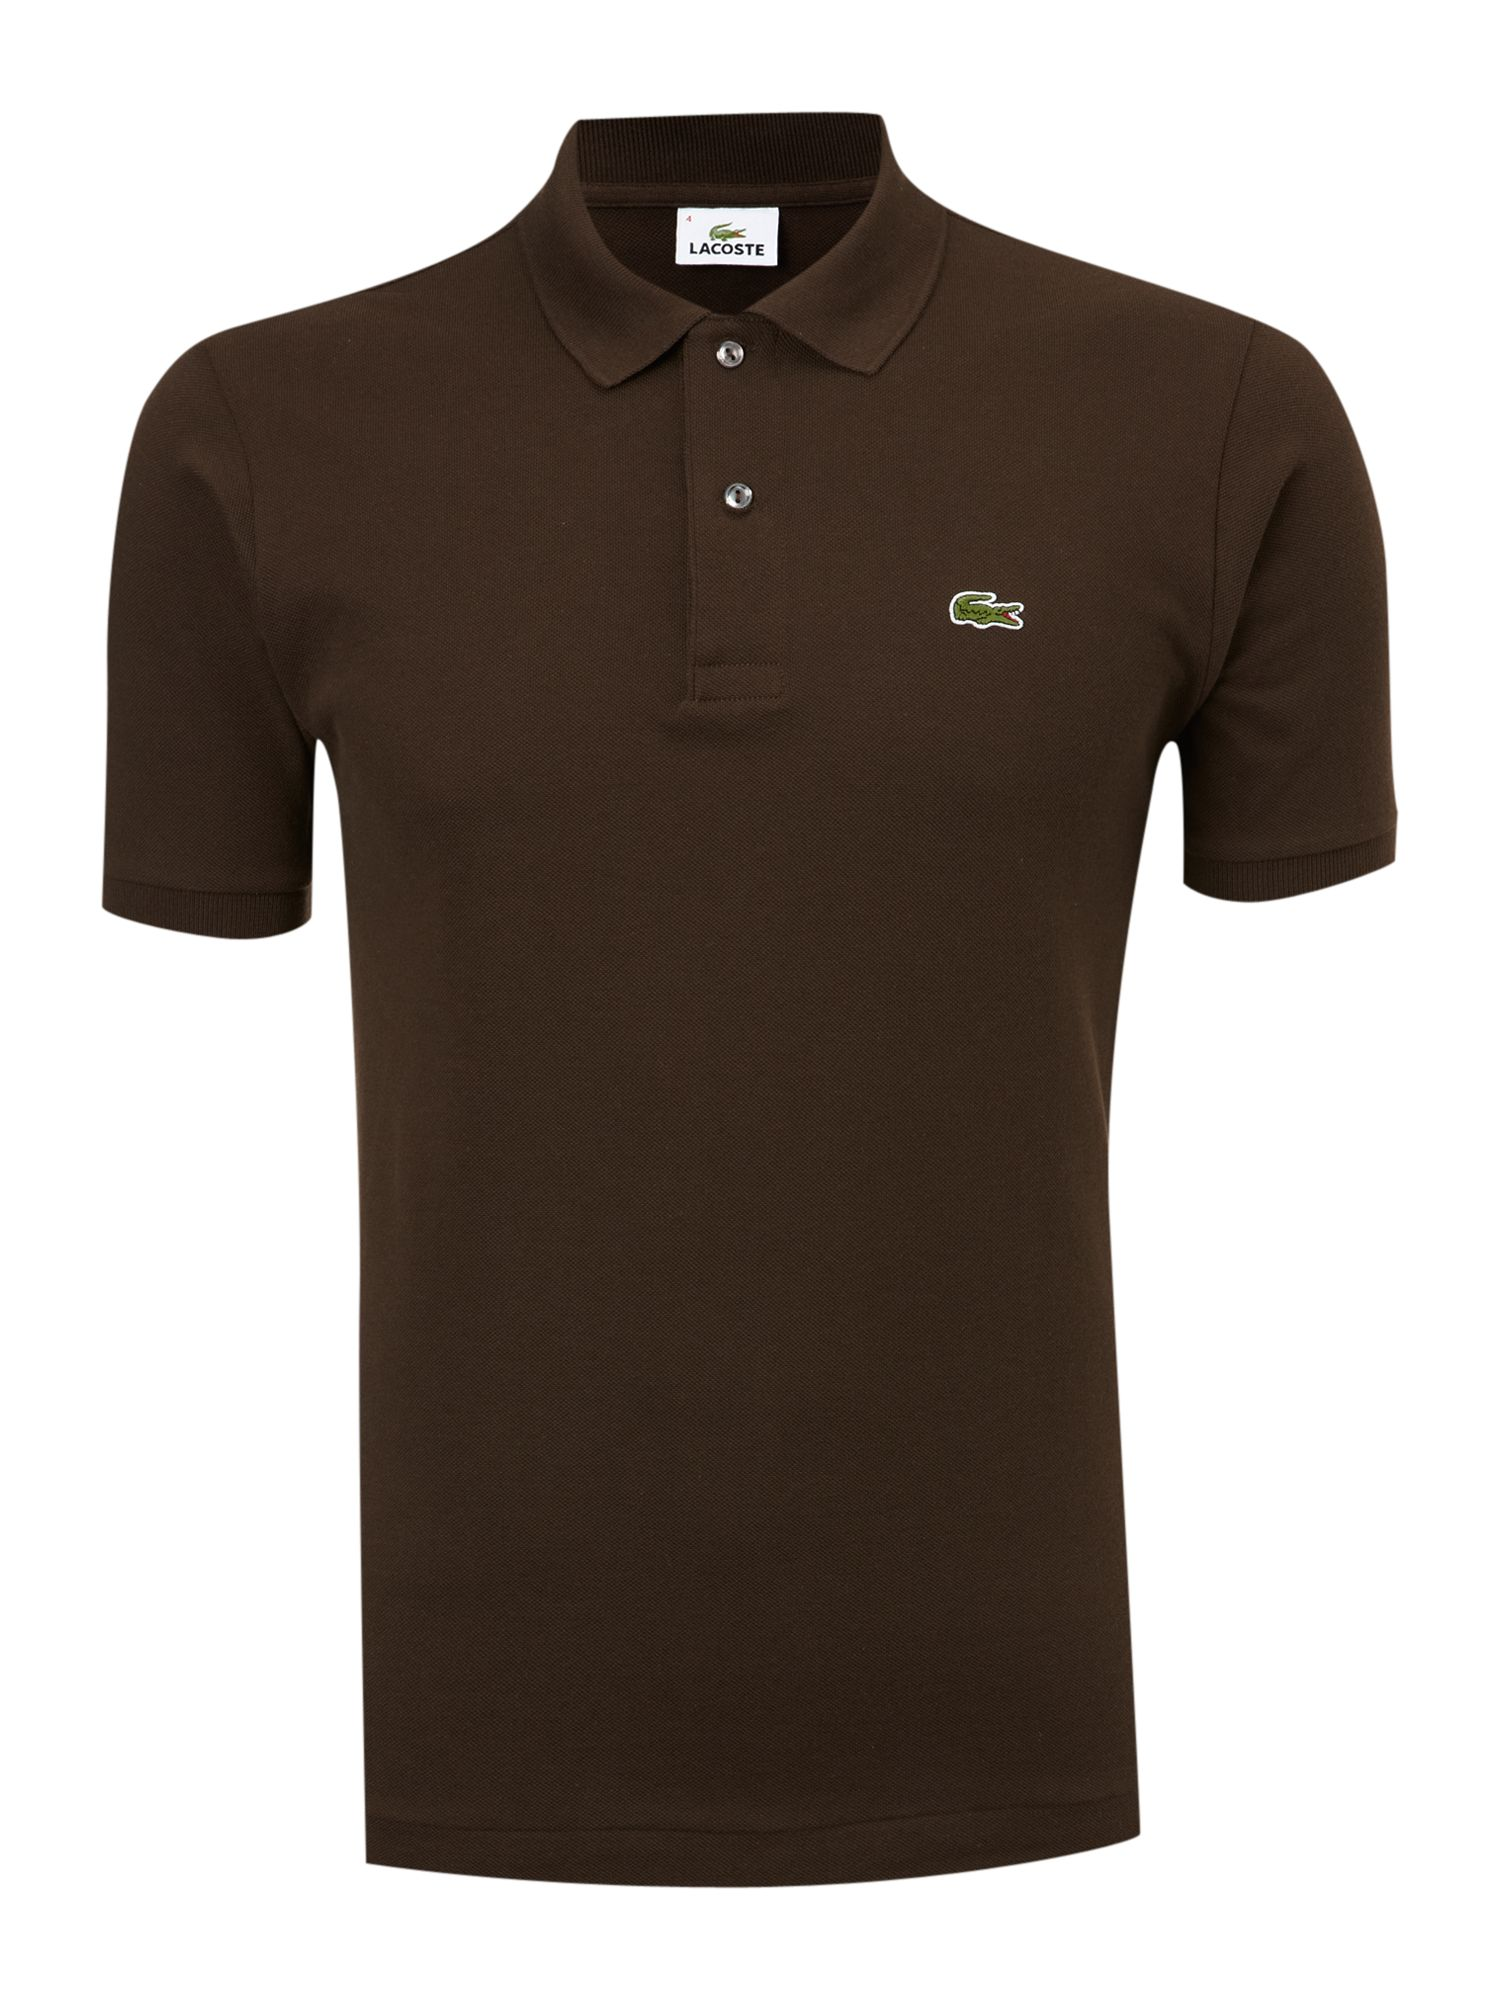 Lacoste Classic Fitted Polo Shirt In Brown For Men Lyst